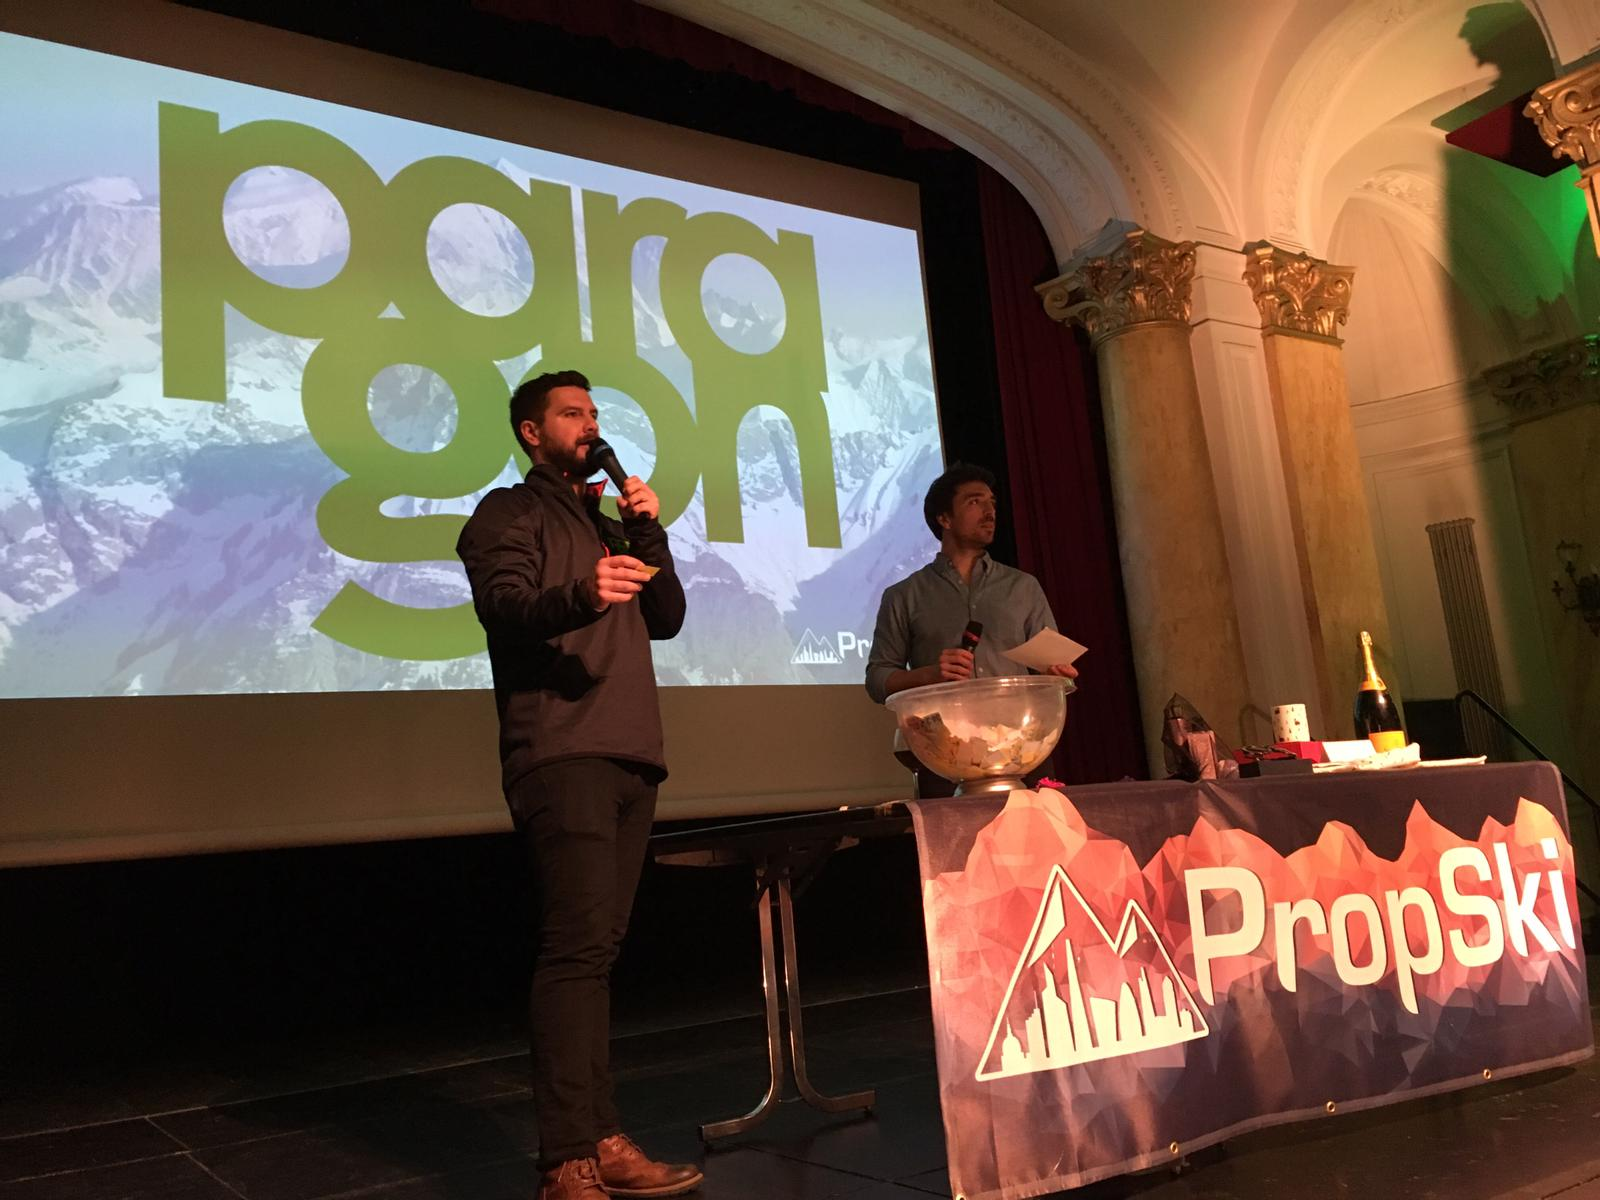 Paragon raises £20,000 for charity in the PropSki Mountain Meal